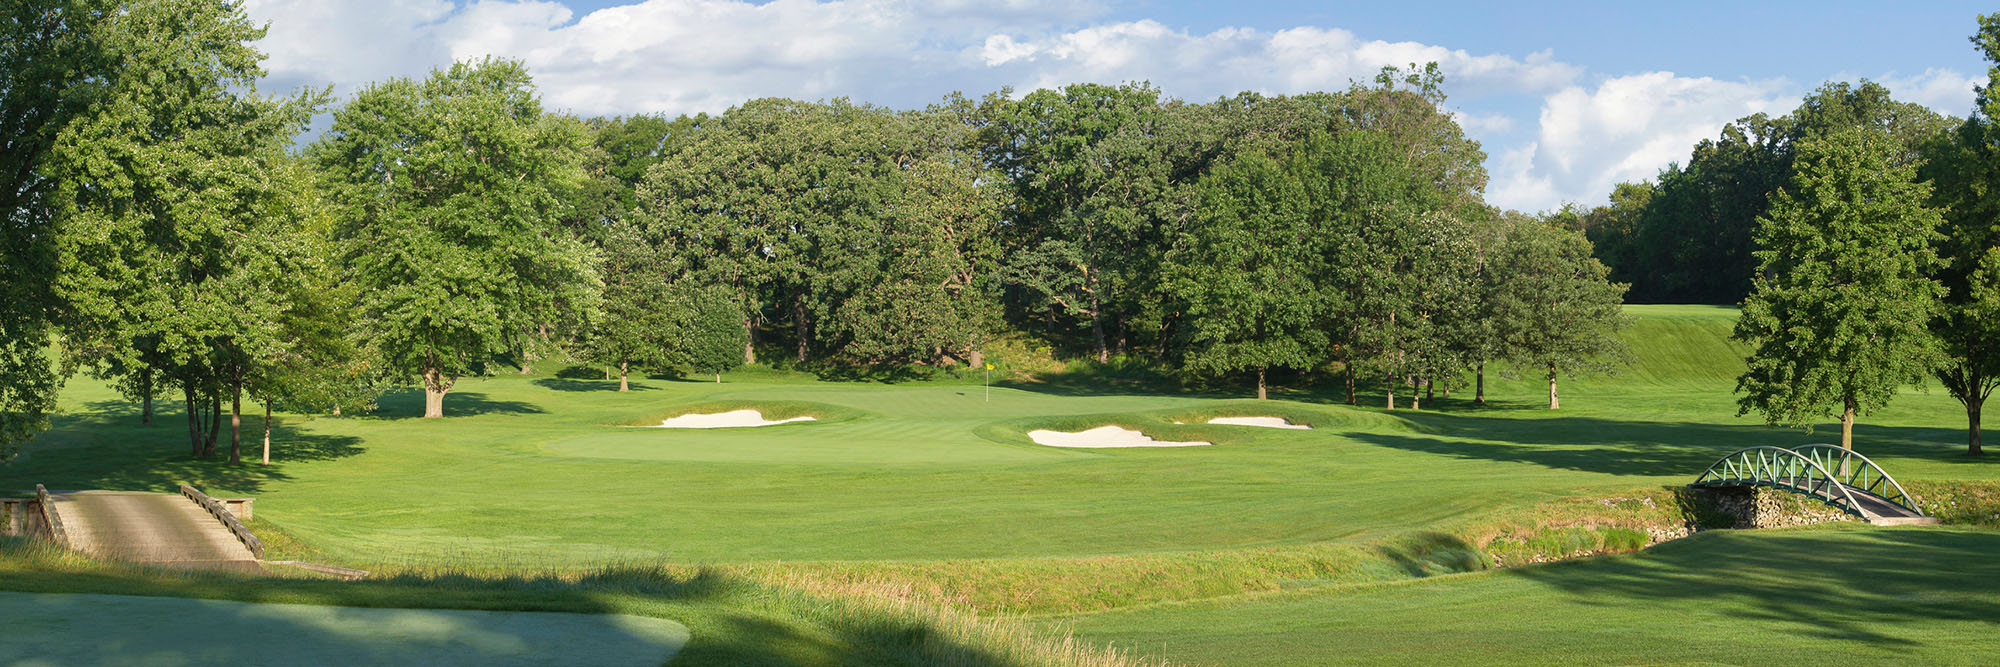 Golf Course Image - Olympia Fields North No. 6